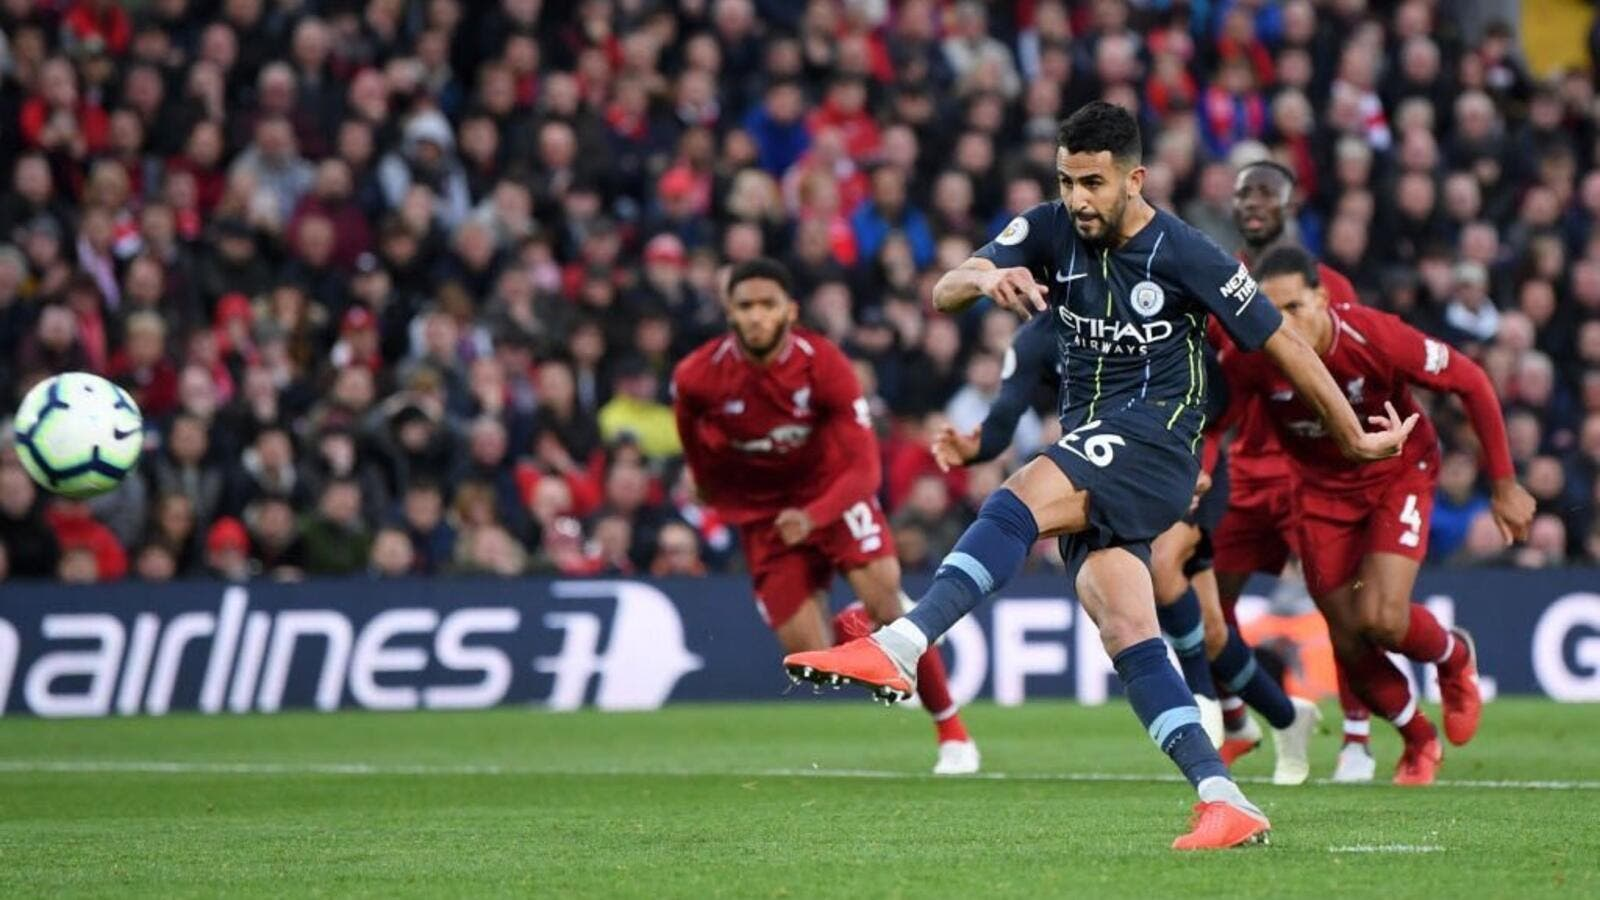 Premier League champions Manchester City reclaimed top spot in the table thanks to a goalless draw against title rivals Liverpool on Sunday. (Photo: @WhoScored)